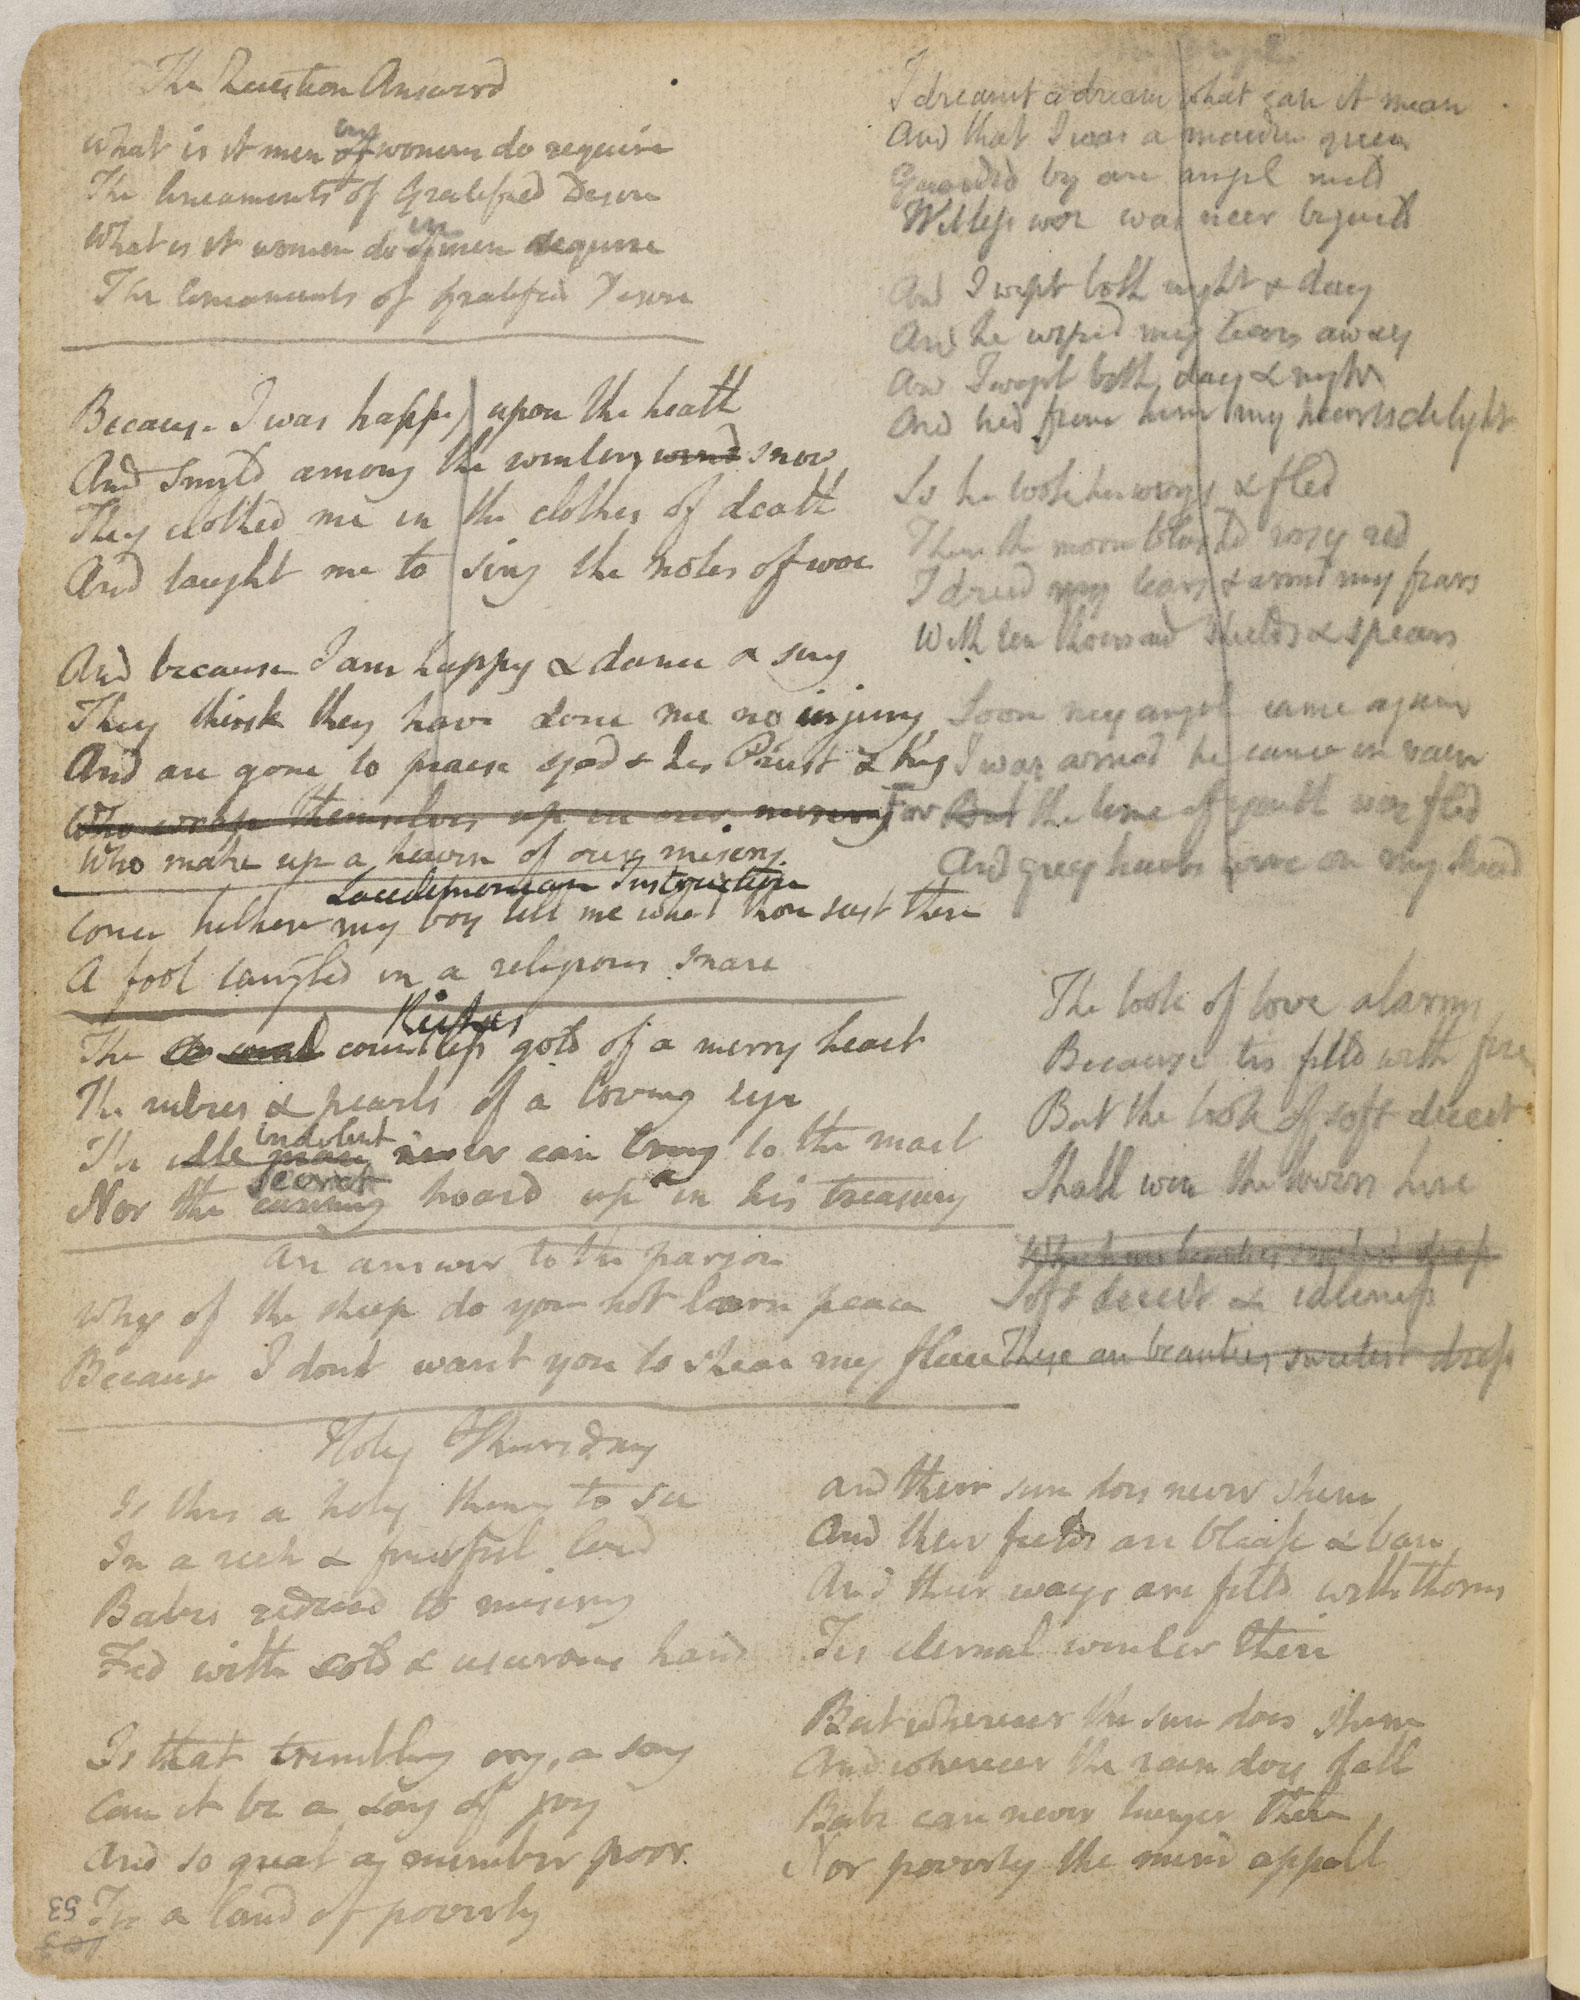 Blake's notebook draft of 'The Chimney Sweeper' for Songs of Experience.